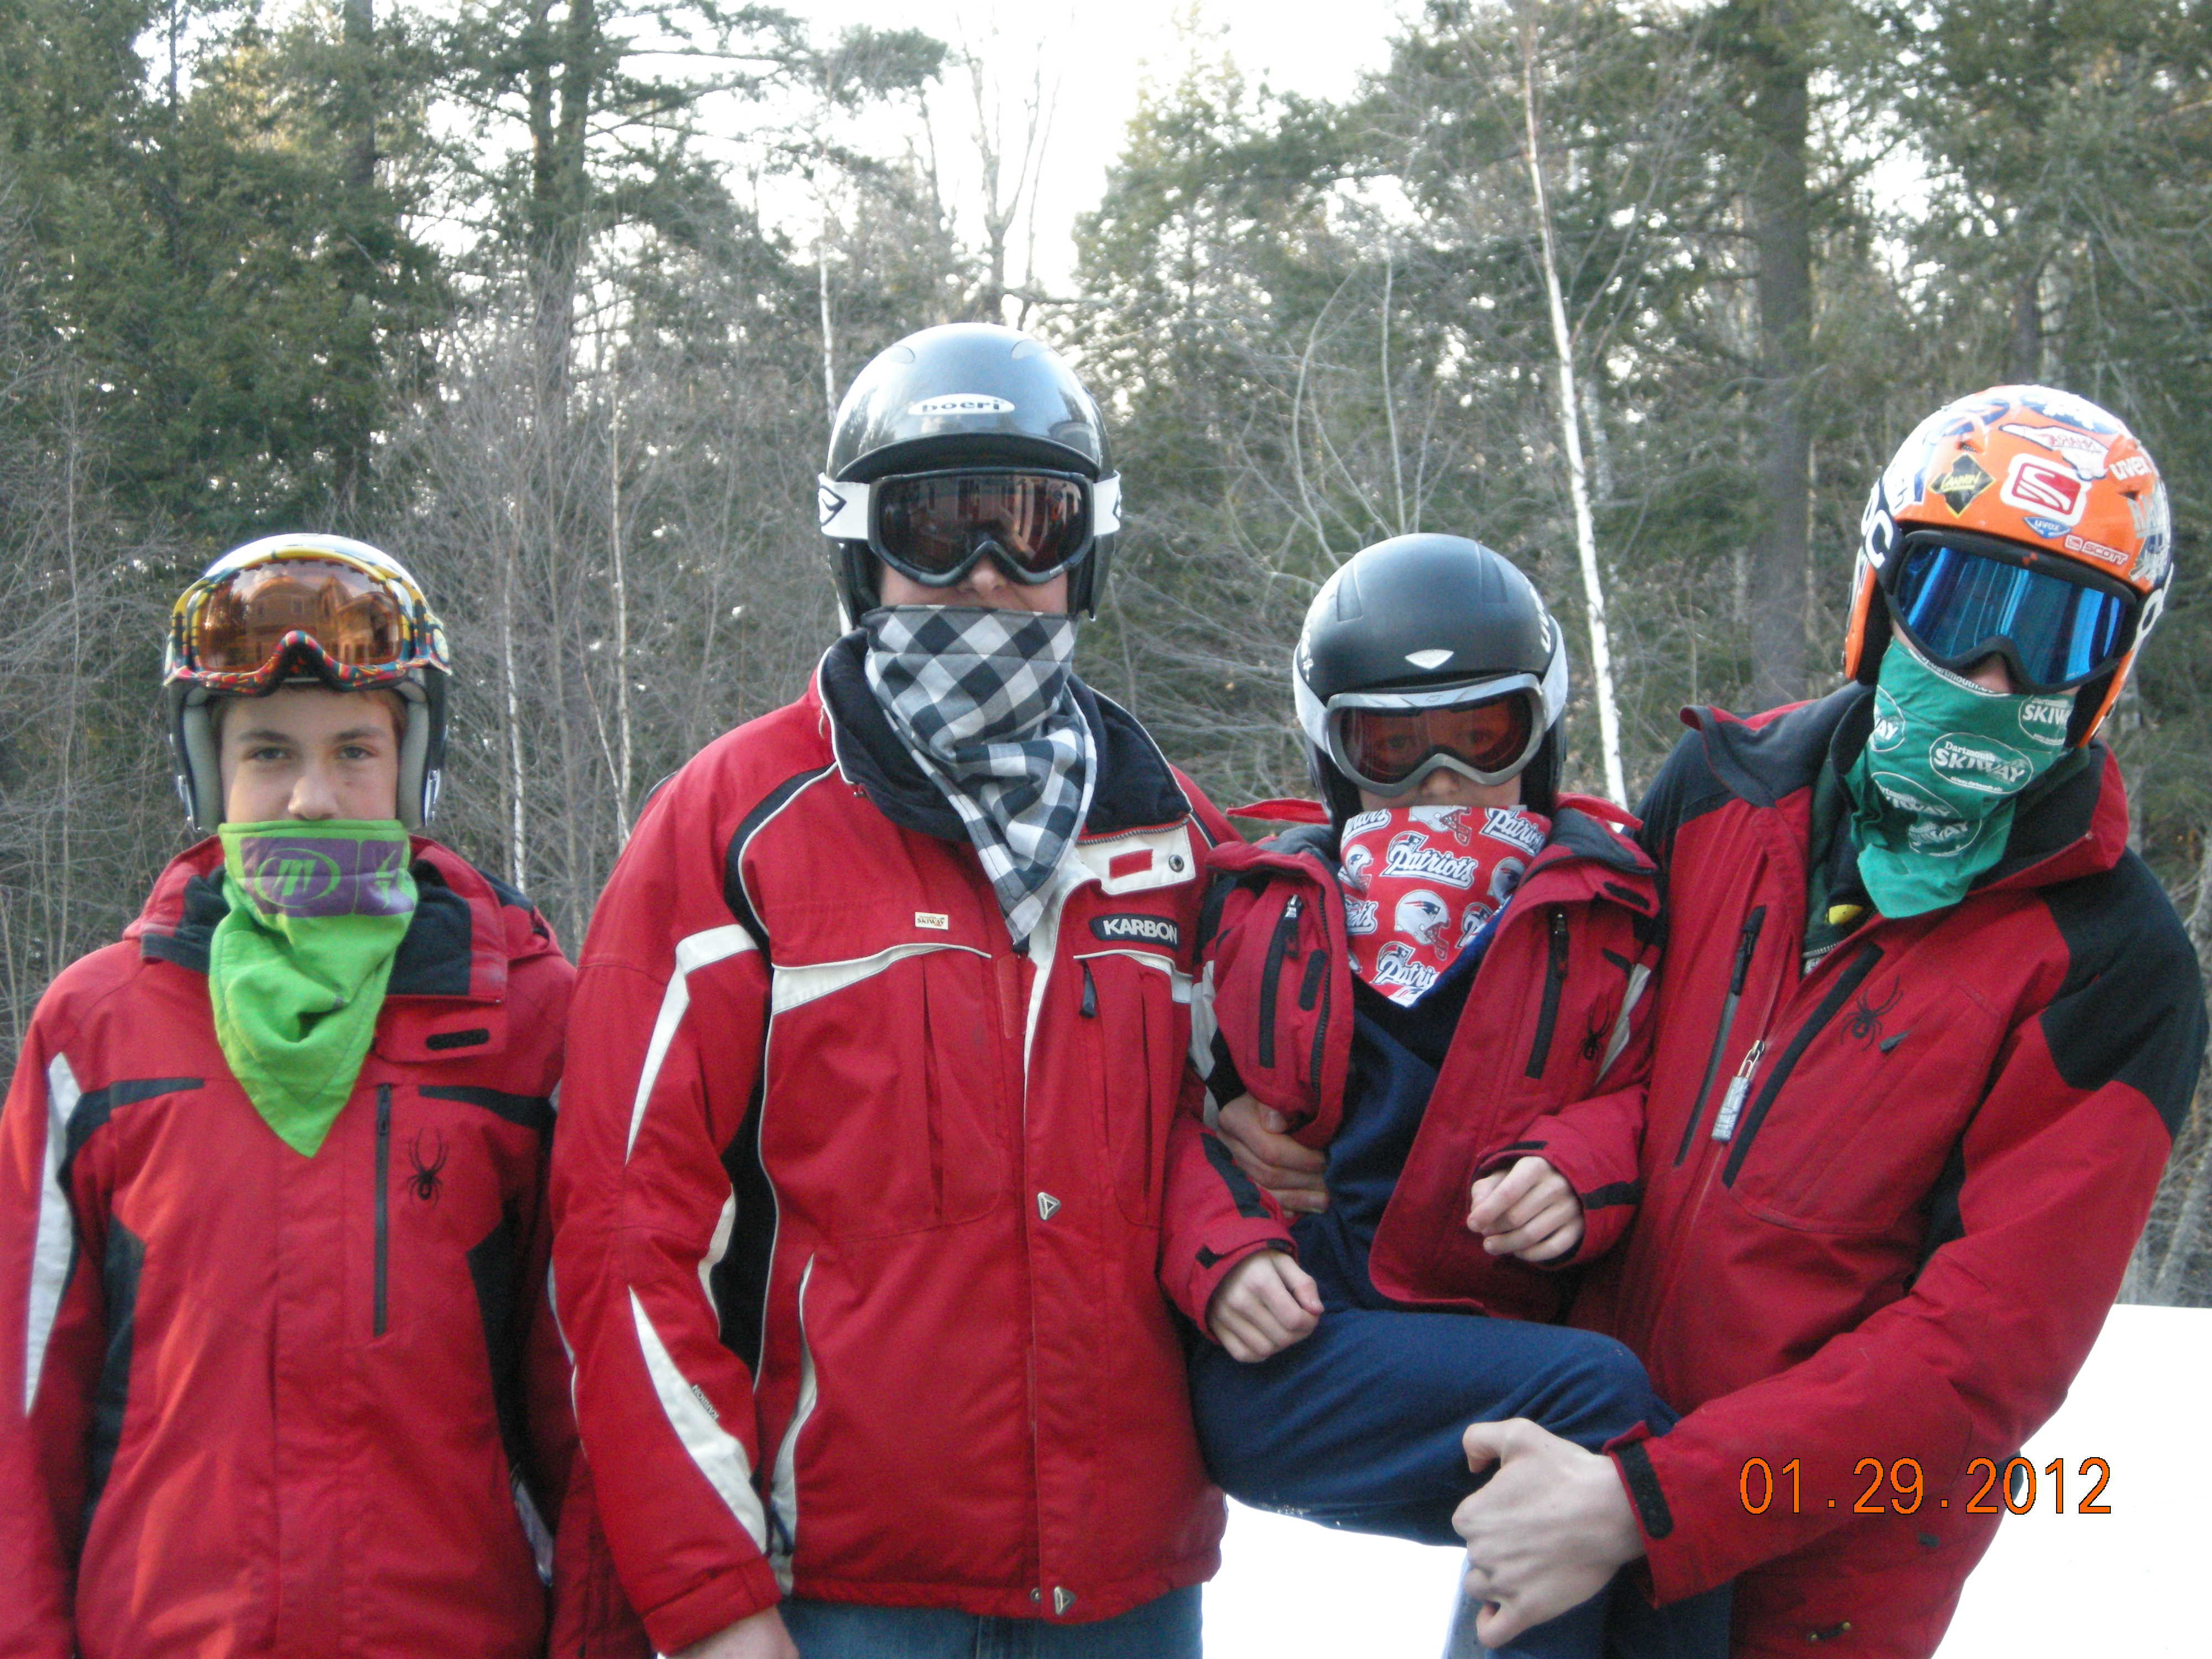 Fleece Lined Bandanas:  How to prevent frostbite while enjoying snow sports